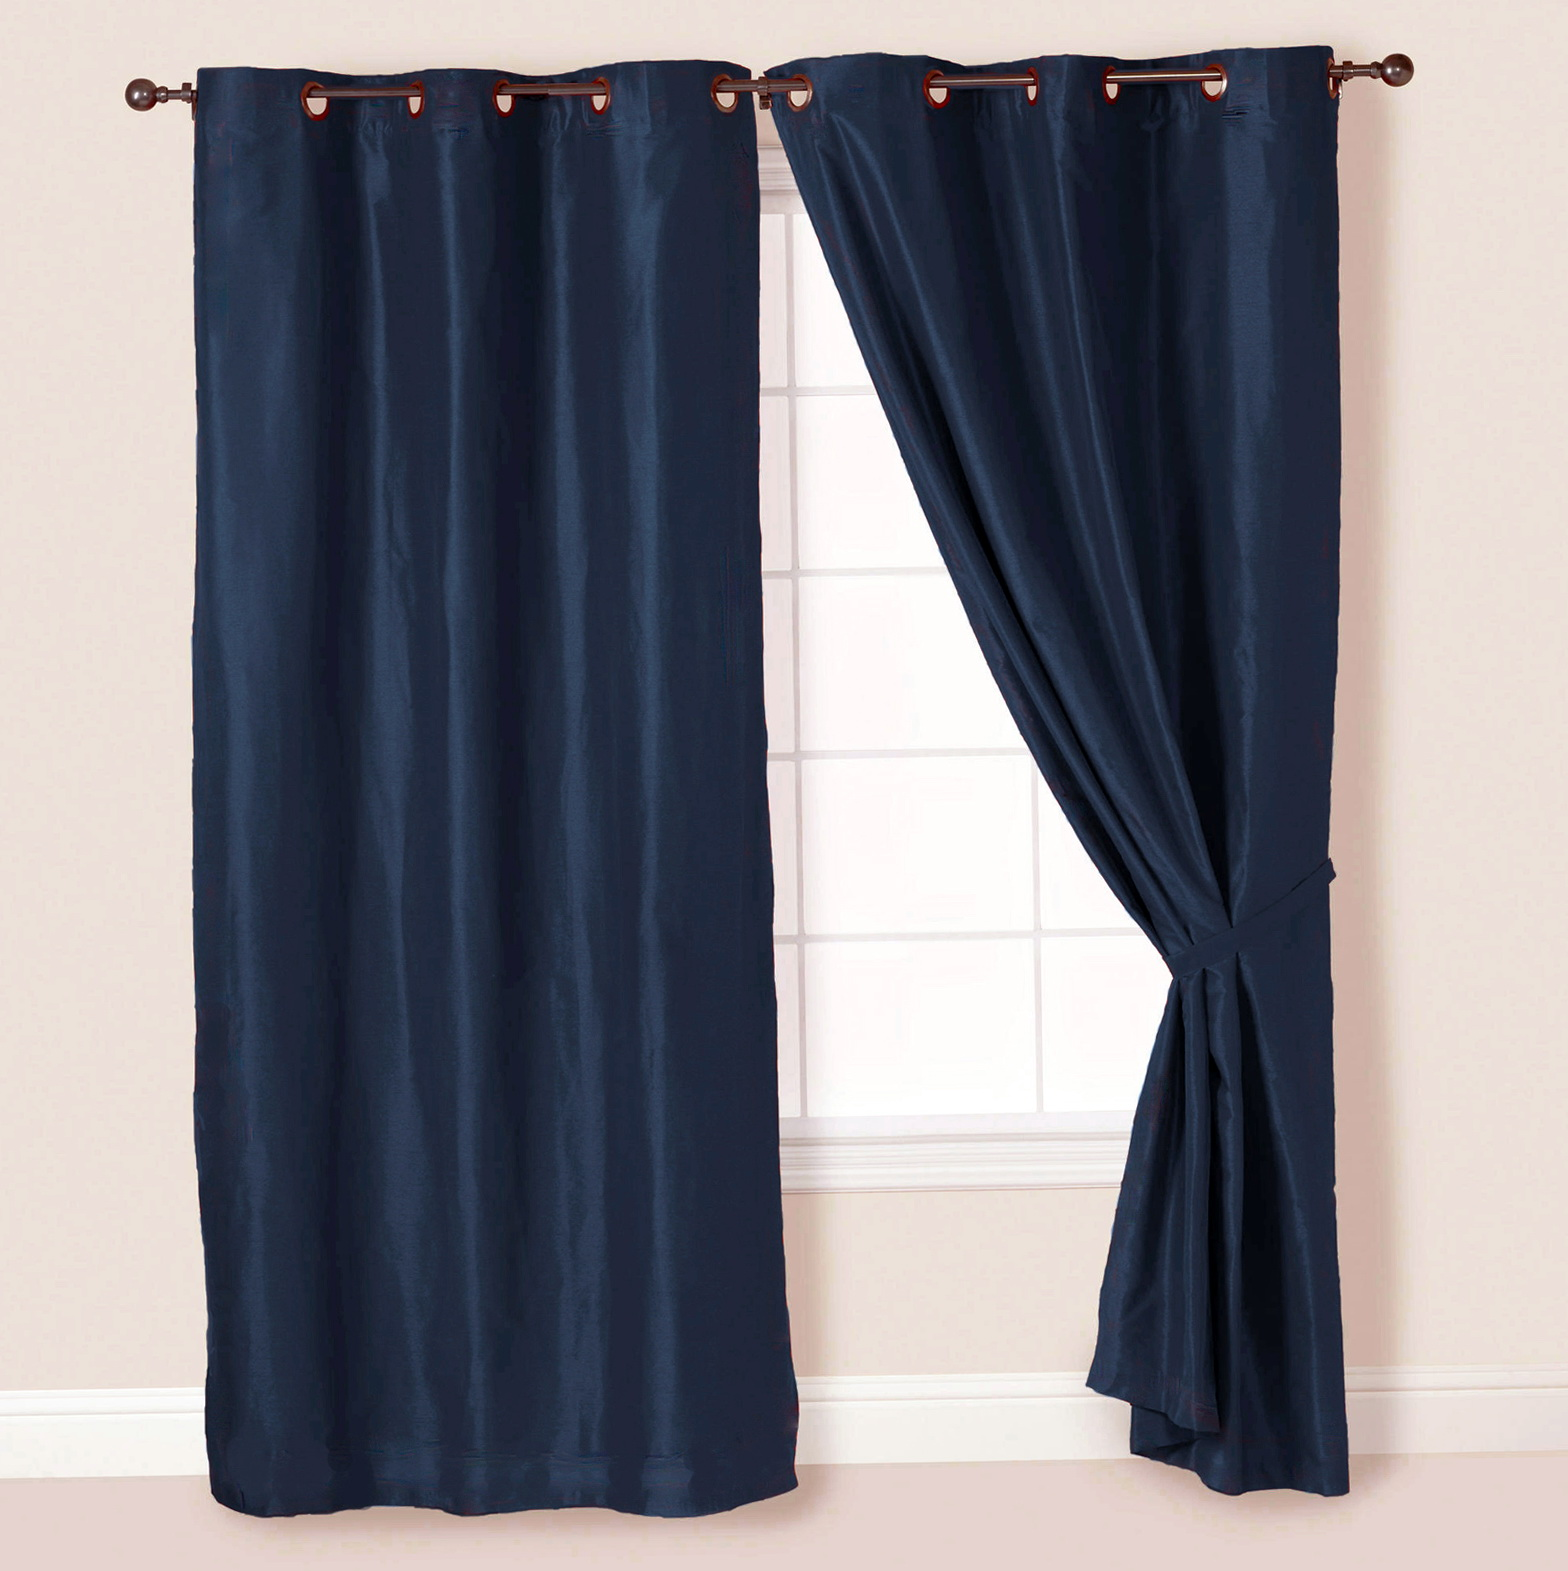 Navy Curtains With Grommets Home Design Ideas